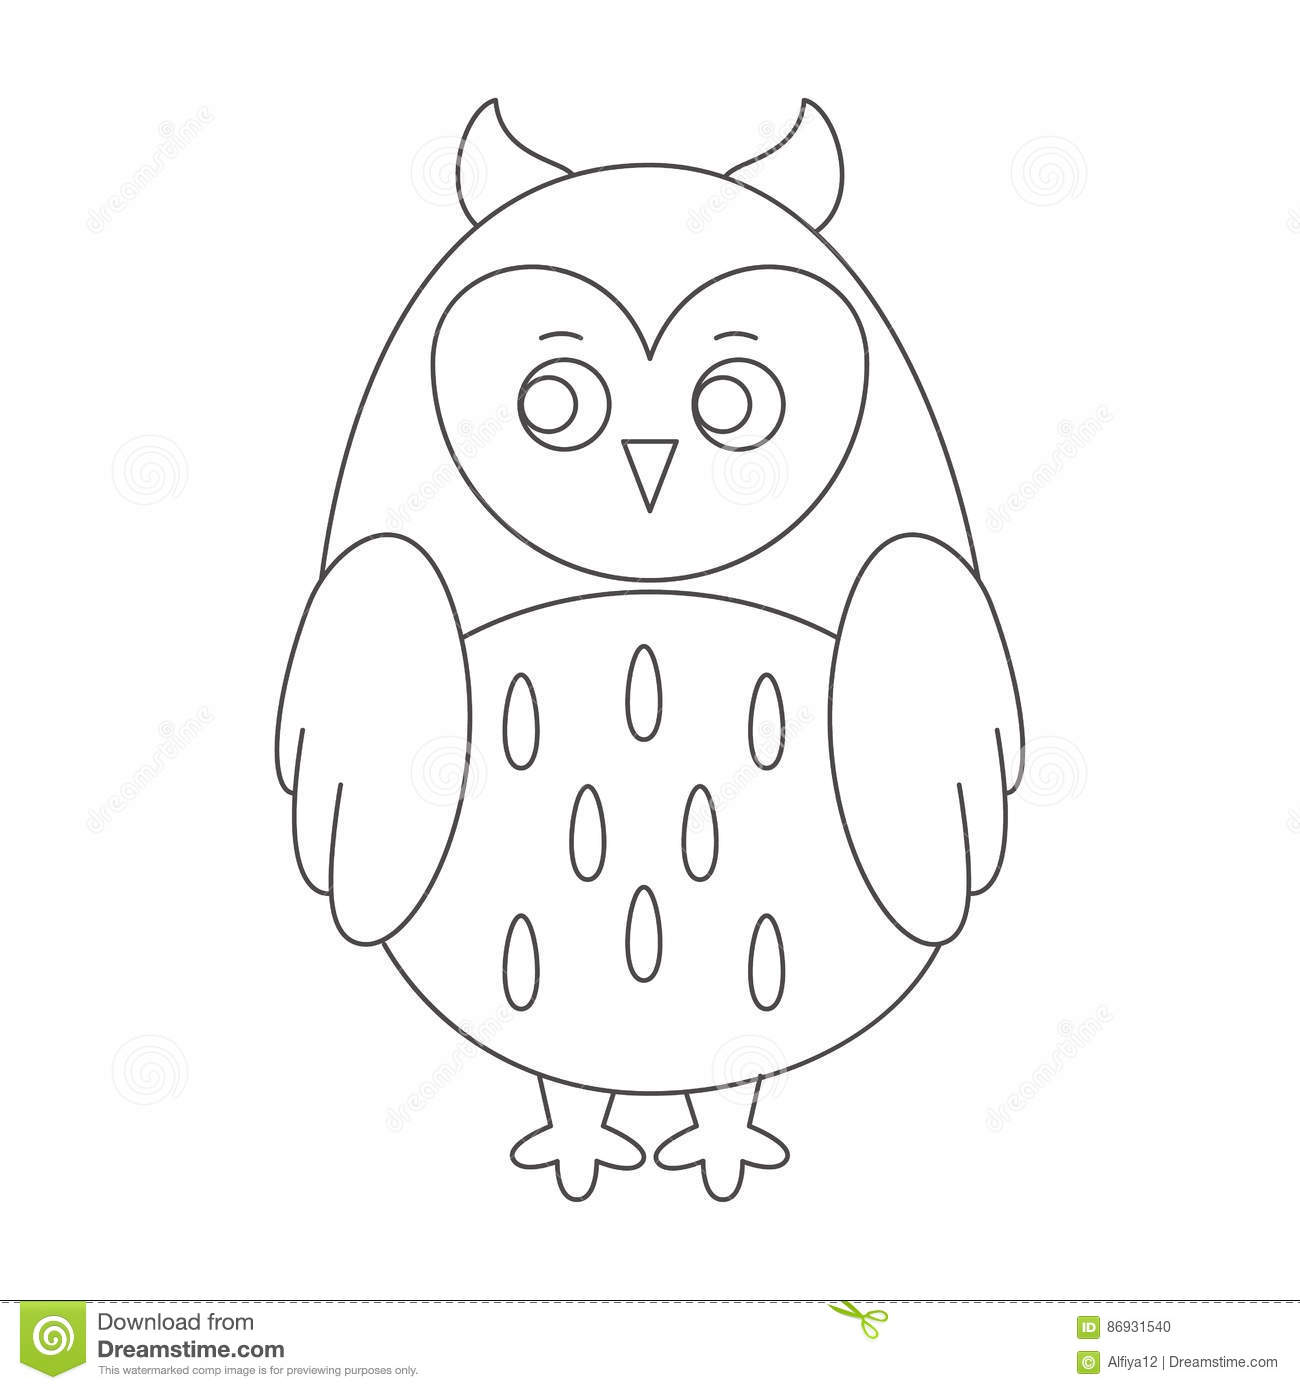 Owl for coloring book stock vector. Illustration of sketch - 86931540